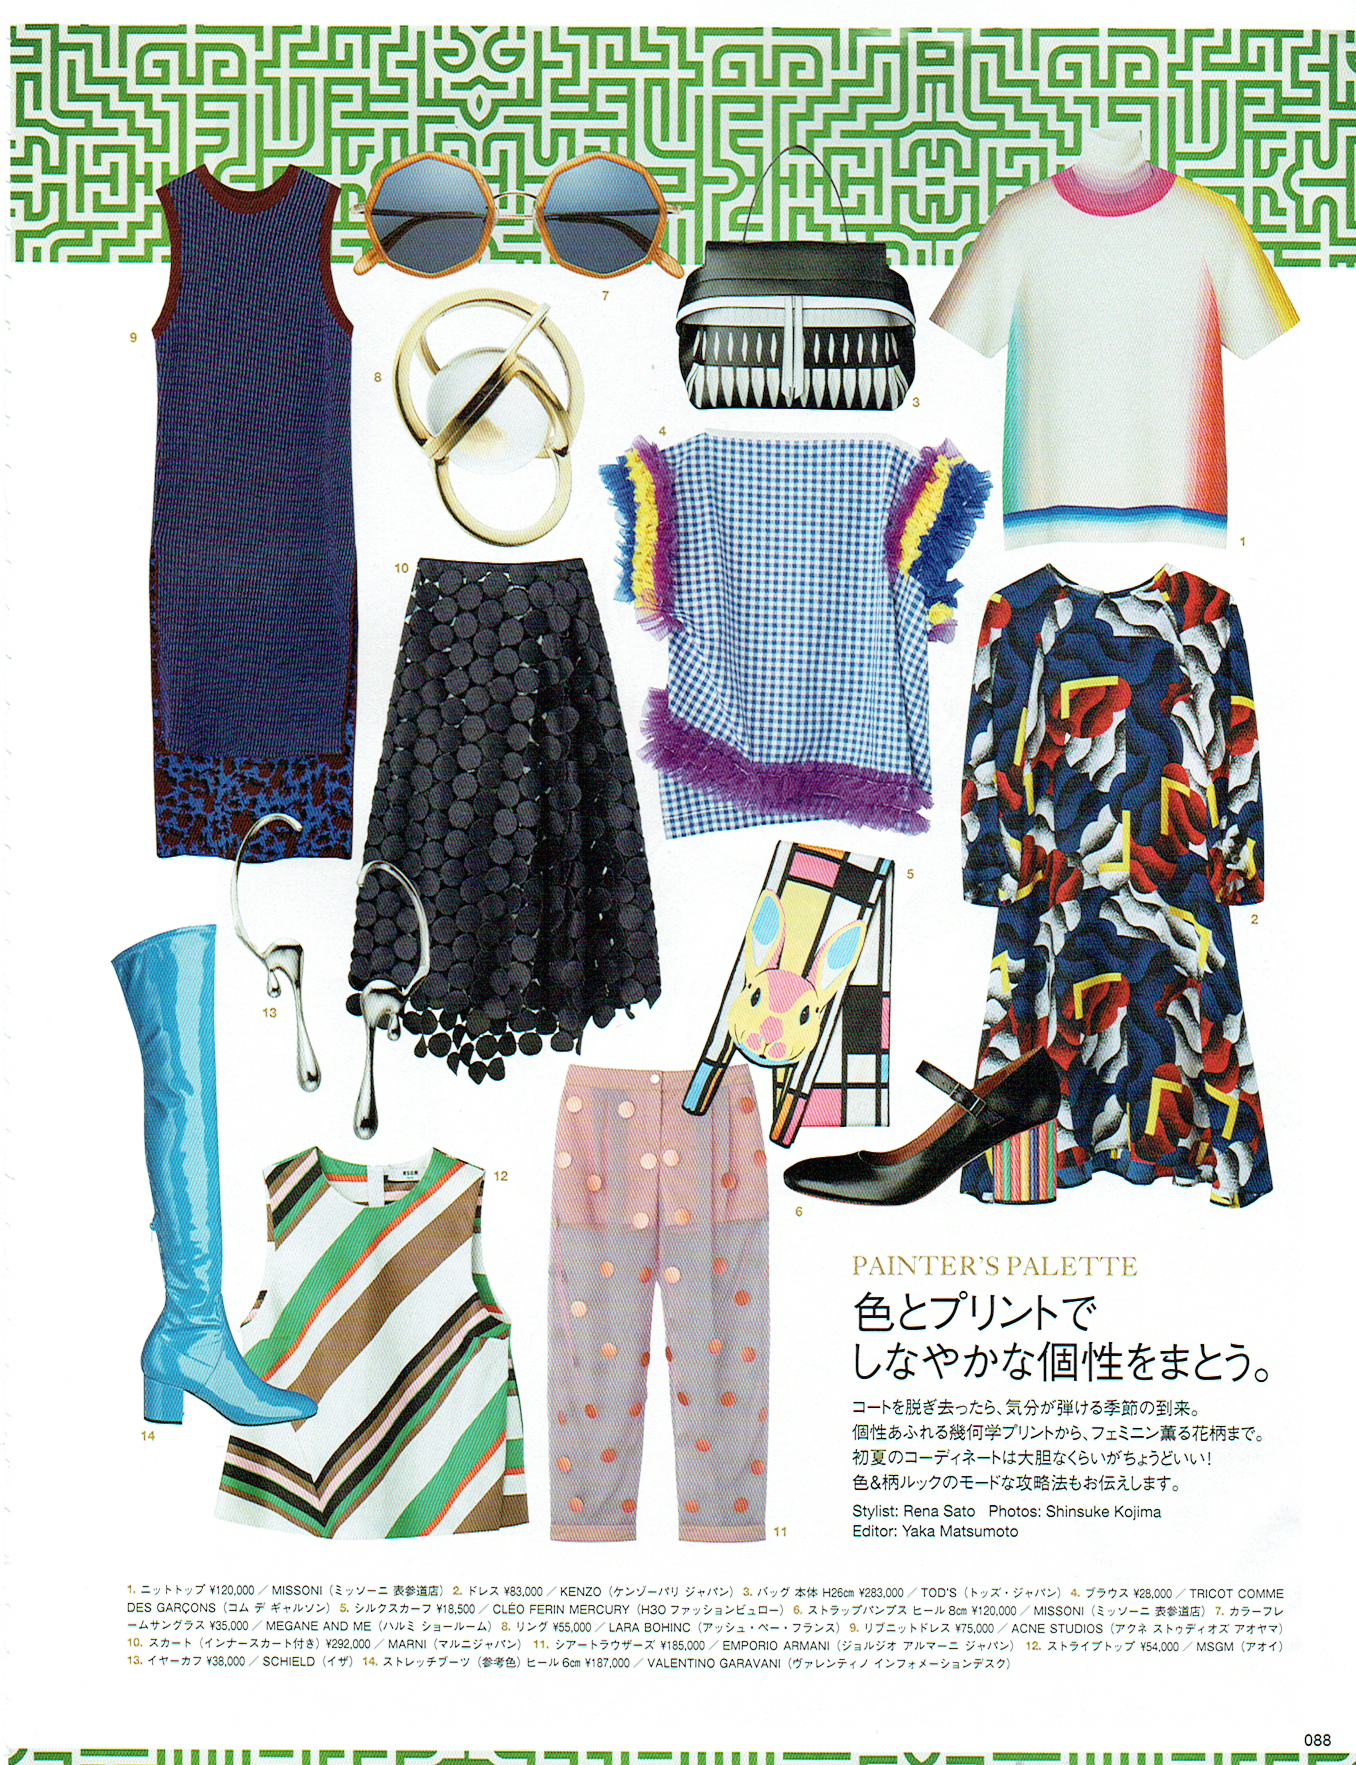 SS16  Small Mondrian Rabbit Long Silk Scarf as shown in Vogue Japan's Painter's Palette selection.